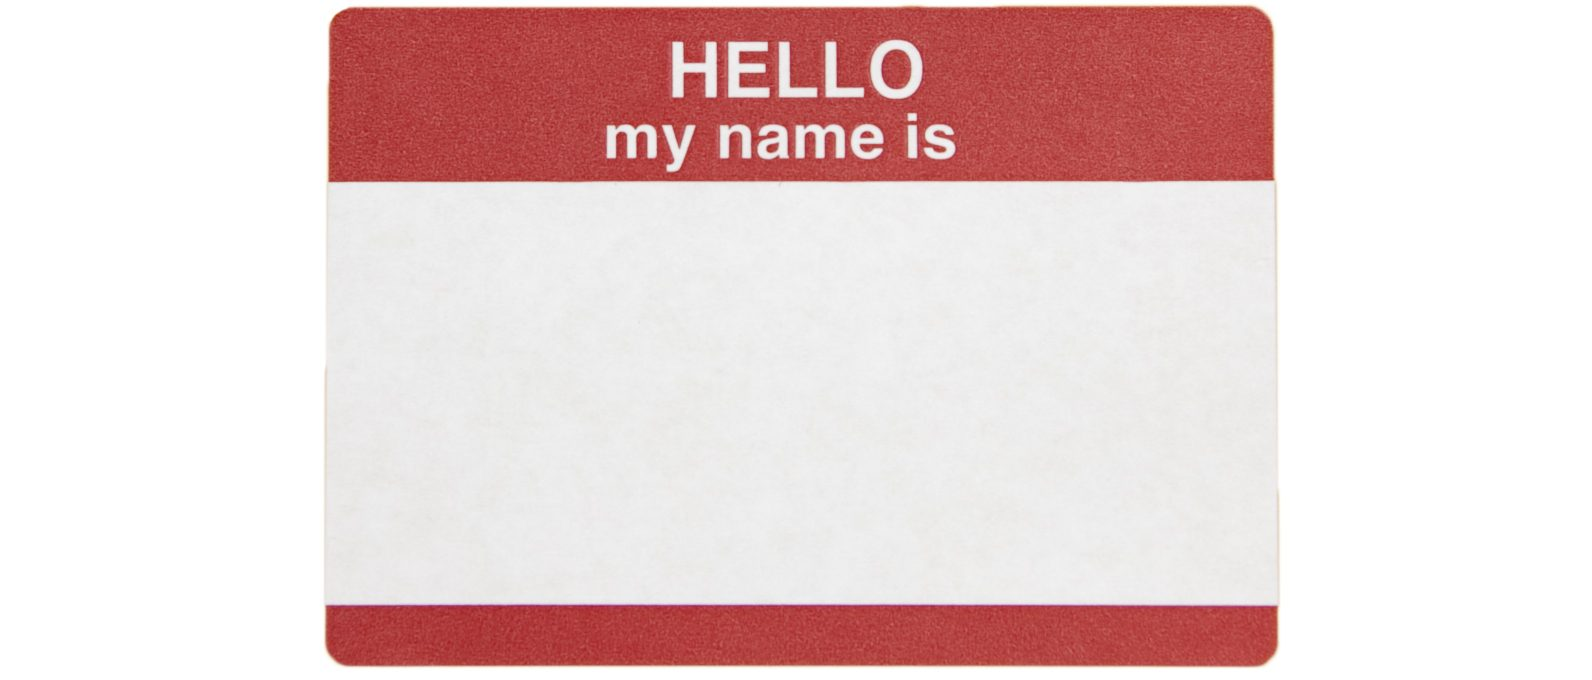 Attending Mutual Support Groups: Name Tag